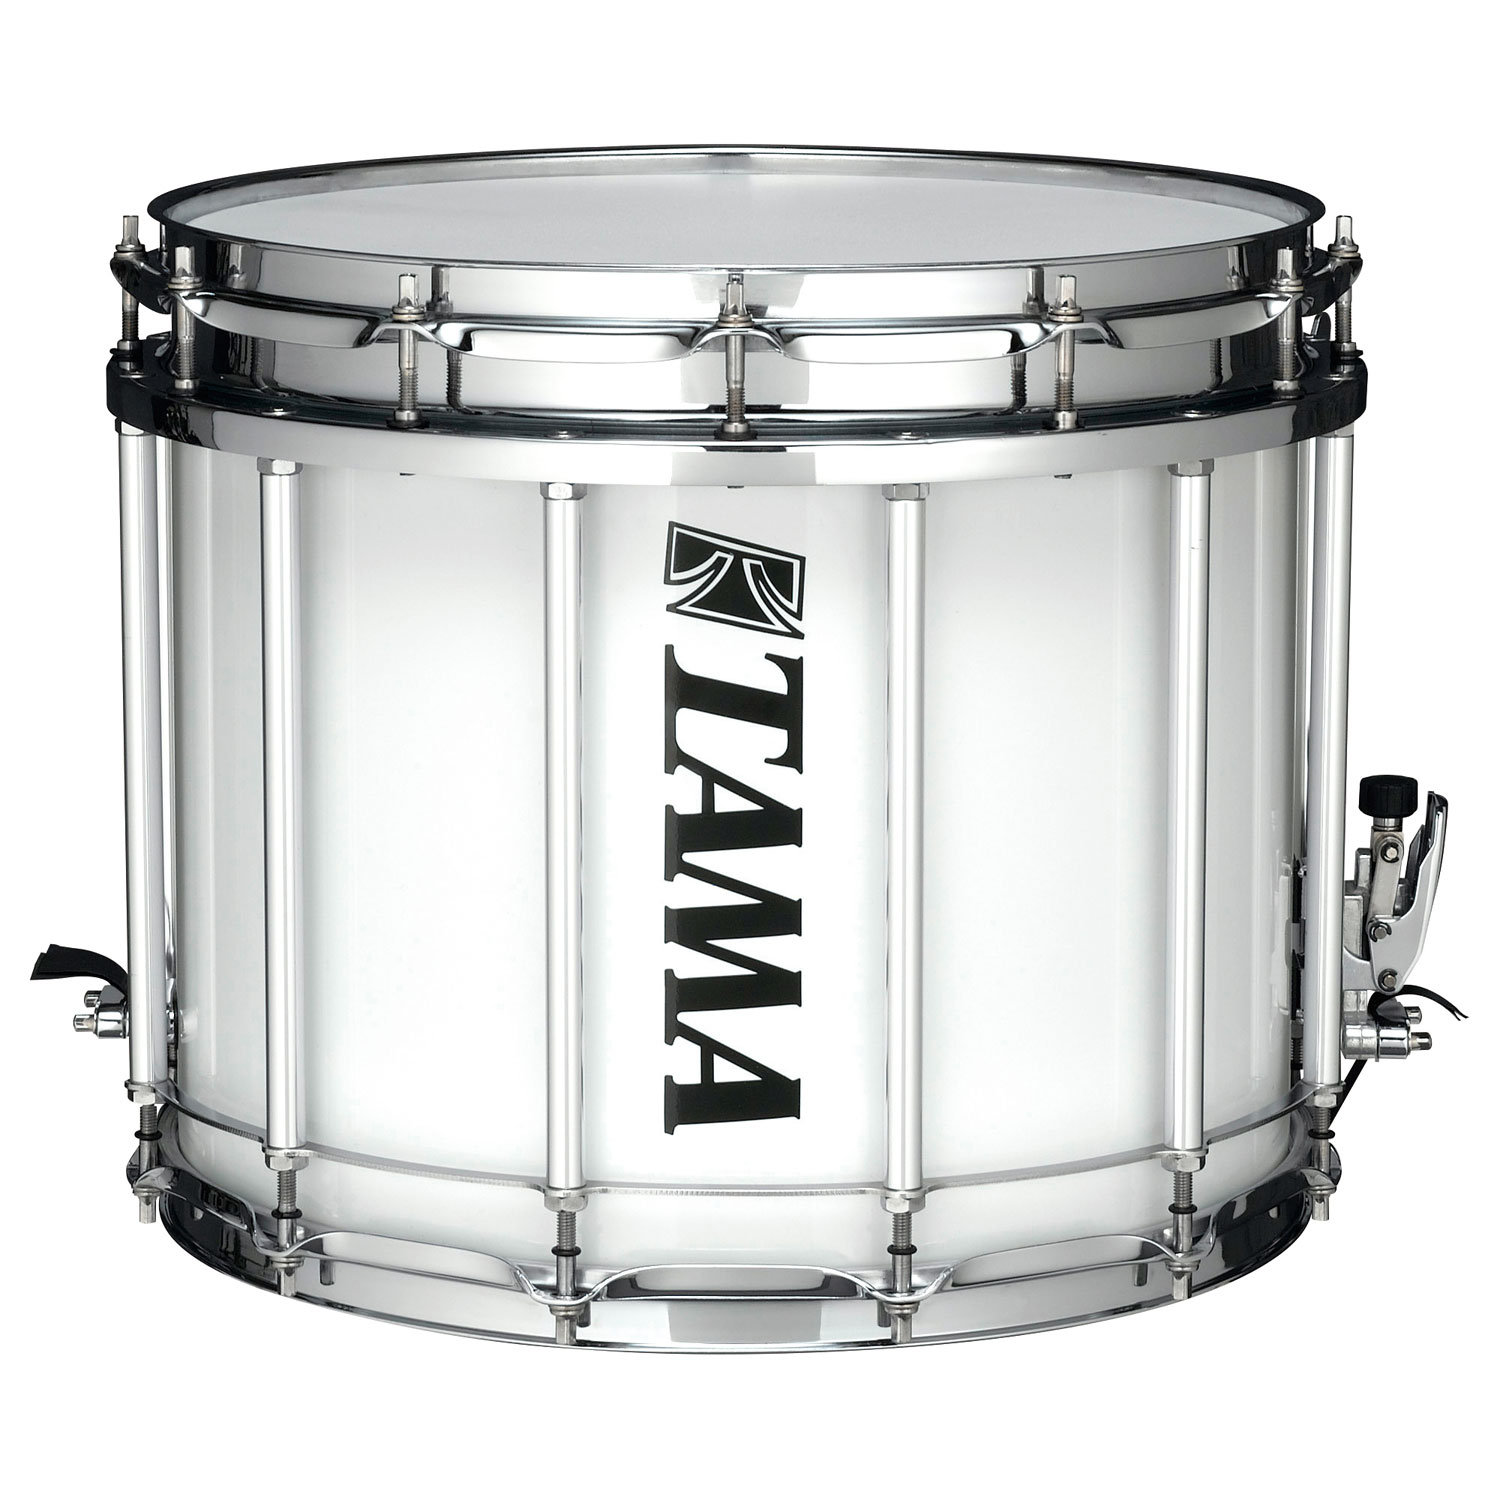 "Tama 12"" (Deep) x 14"" (Diameter) StarLight Marching Snare Drum in Sugar White Wrap"